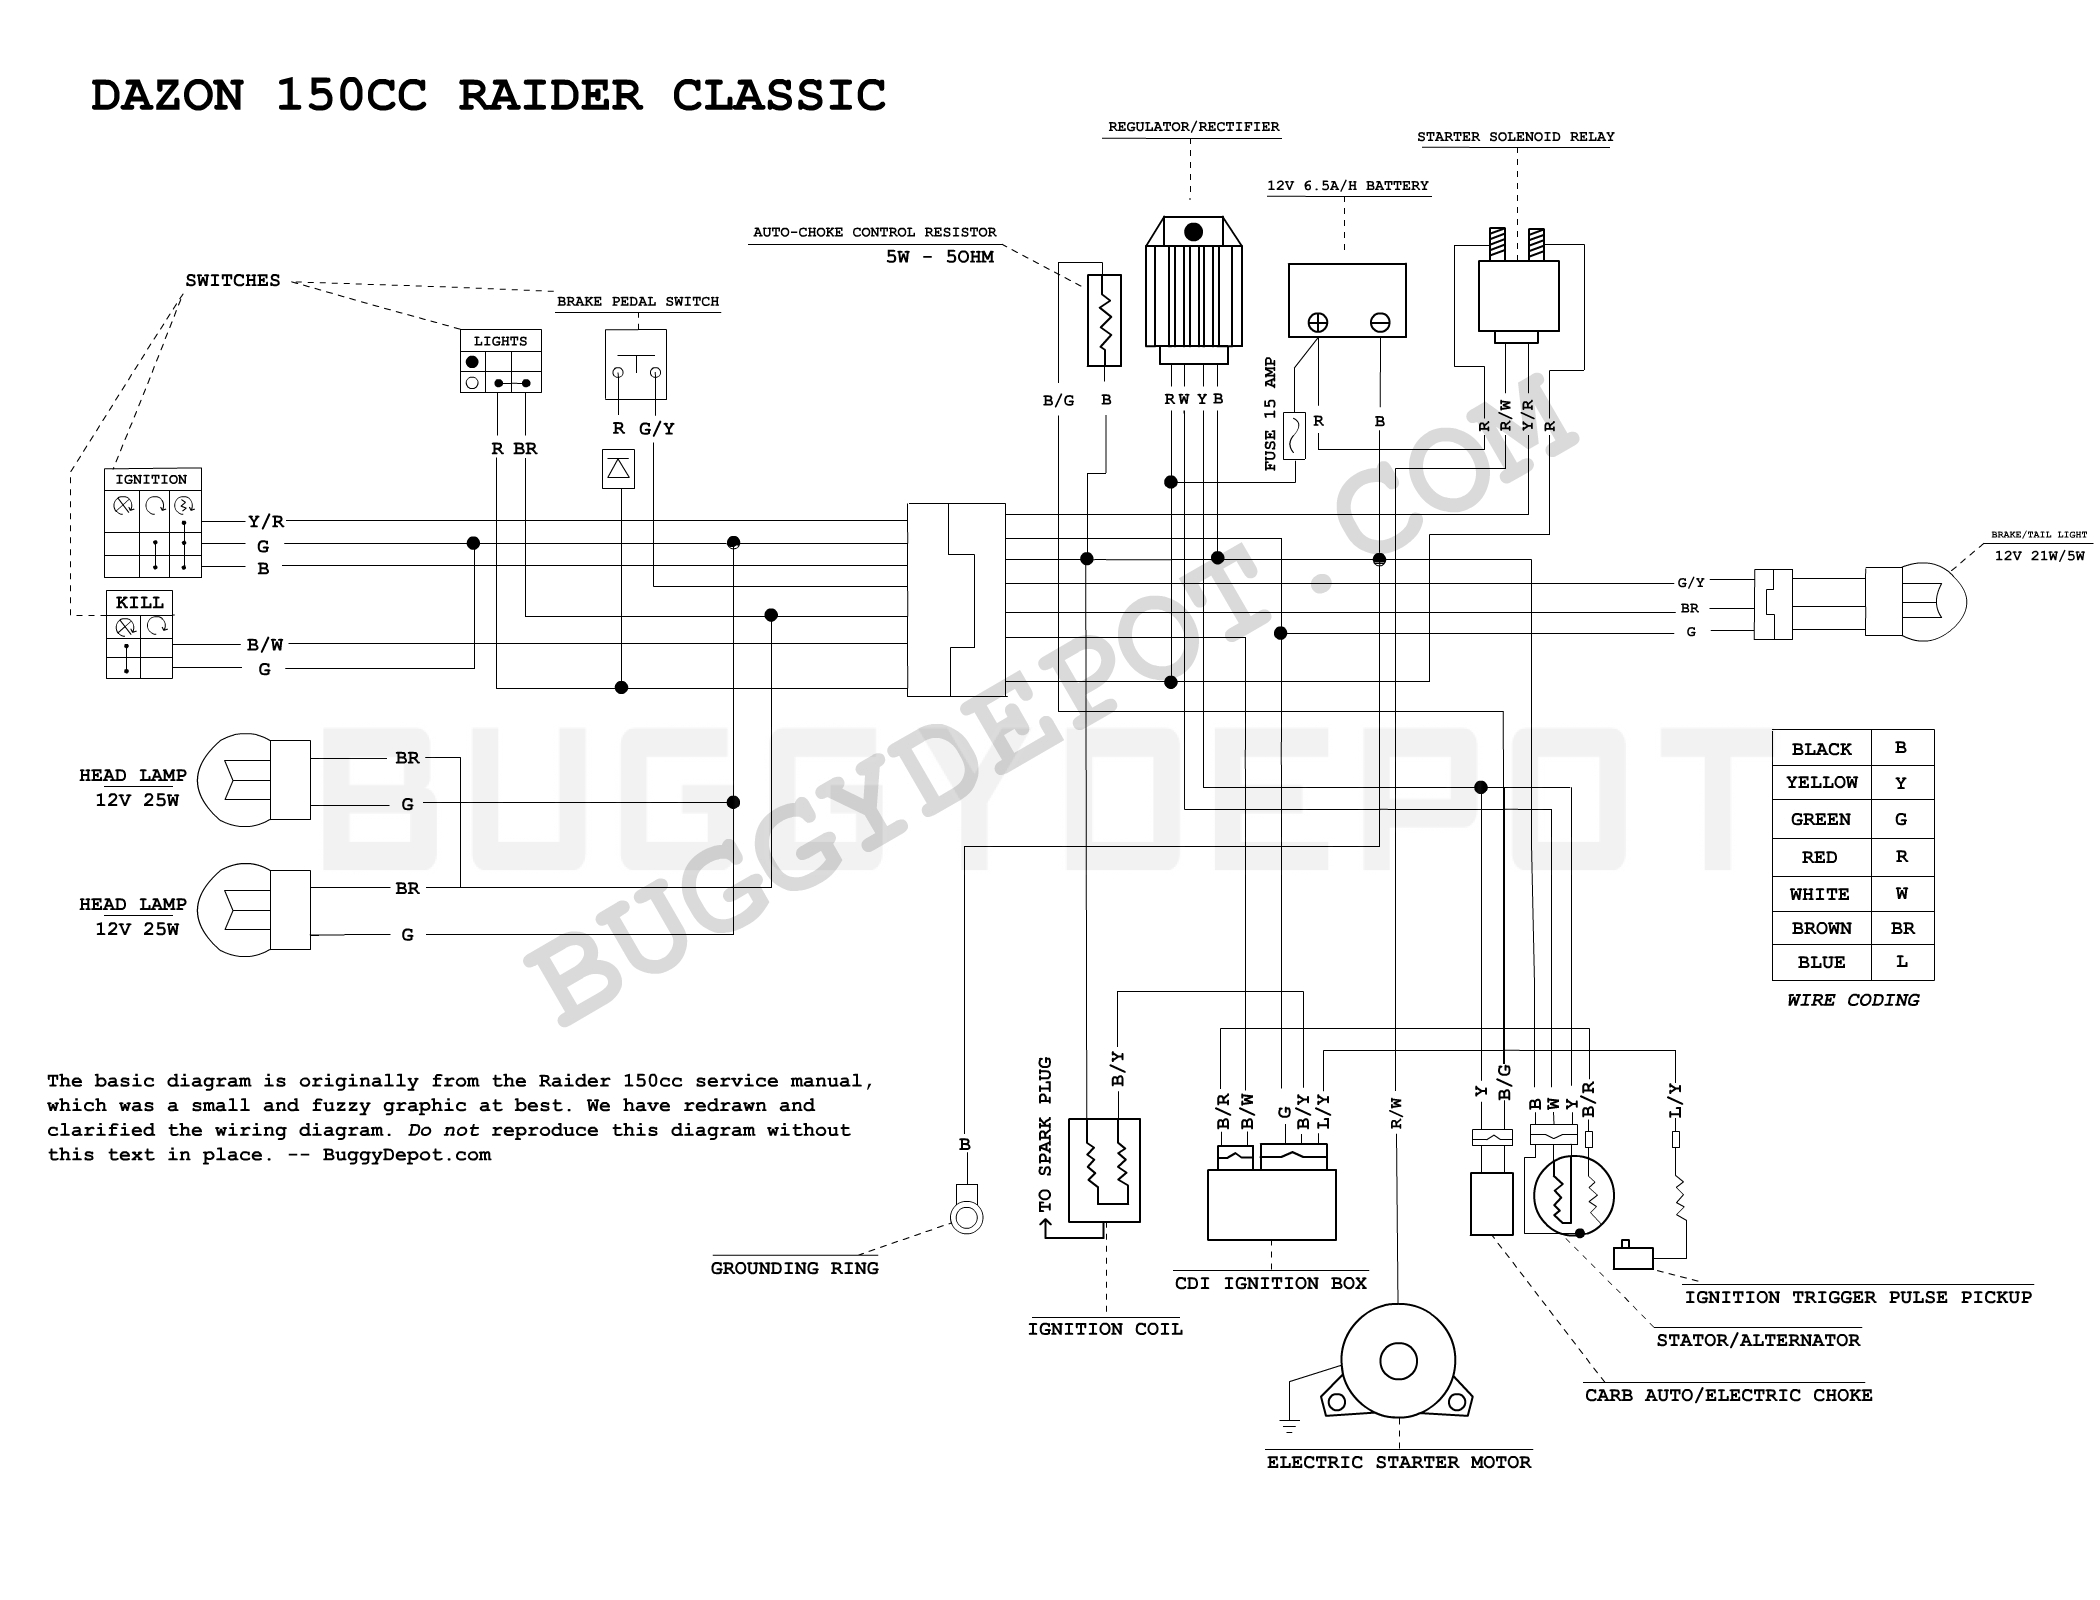 article_33_1278205207?resize=665%2C507 diagrams 620325 ruckus horn wiring diagram honda ruckus wiring honda ruckus wiring diagram at gsmportal.co